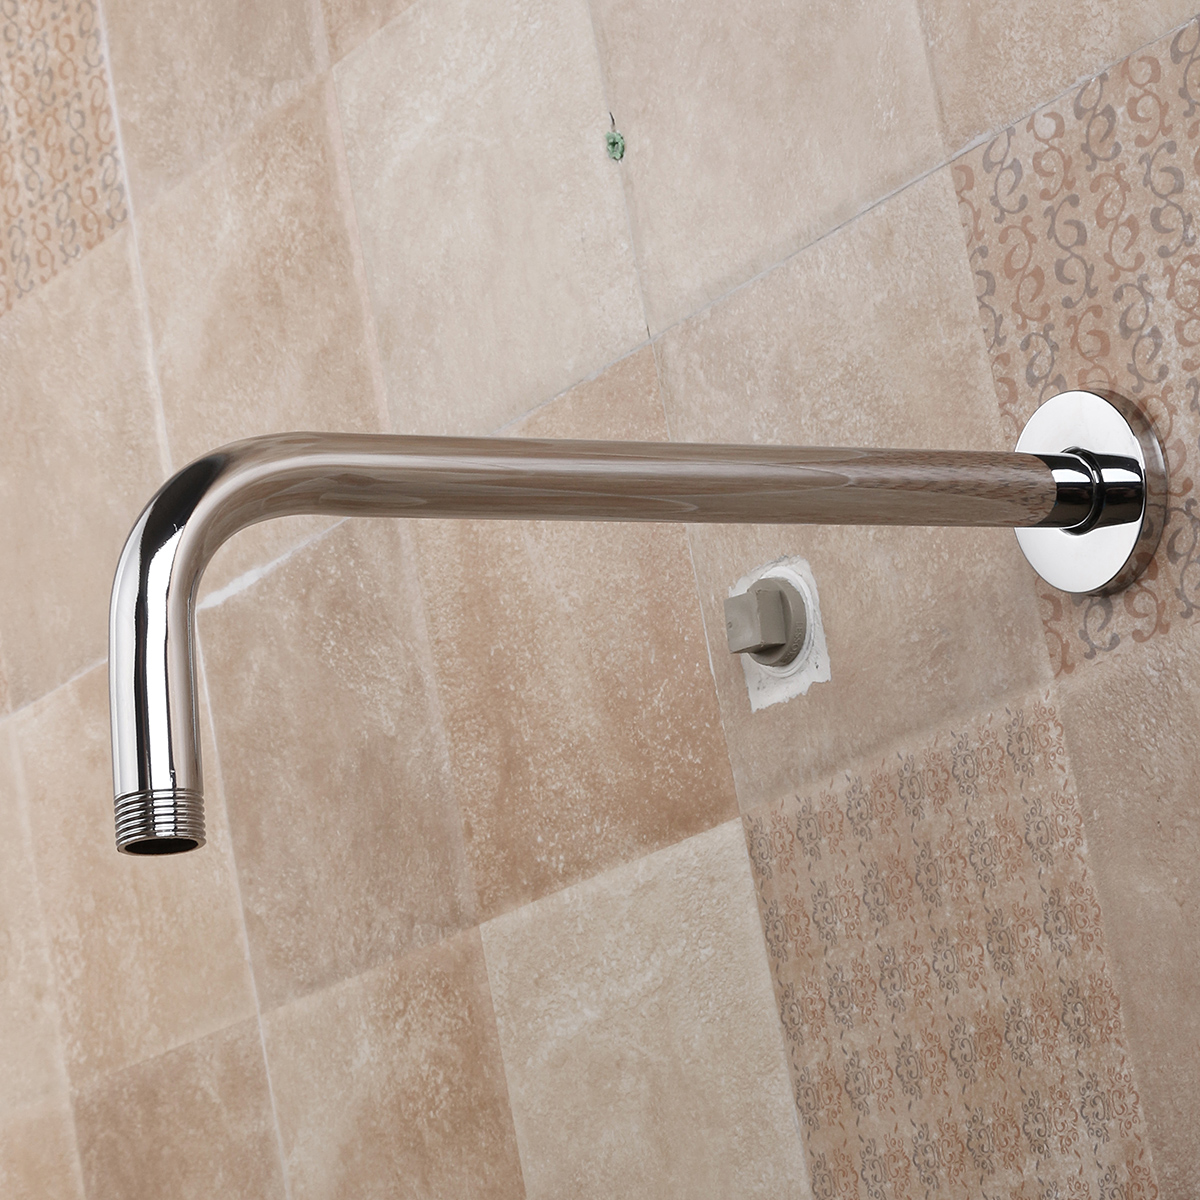 Stainless Steel Shower Extension Arm Home Bathroom Wall ...